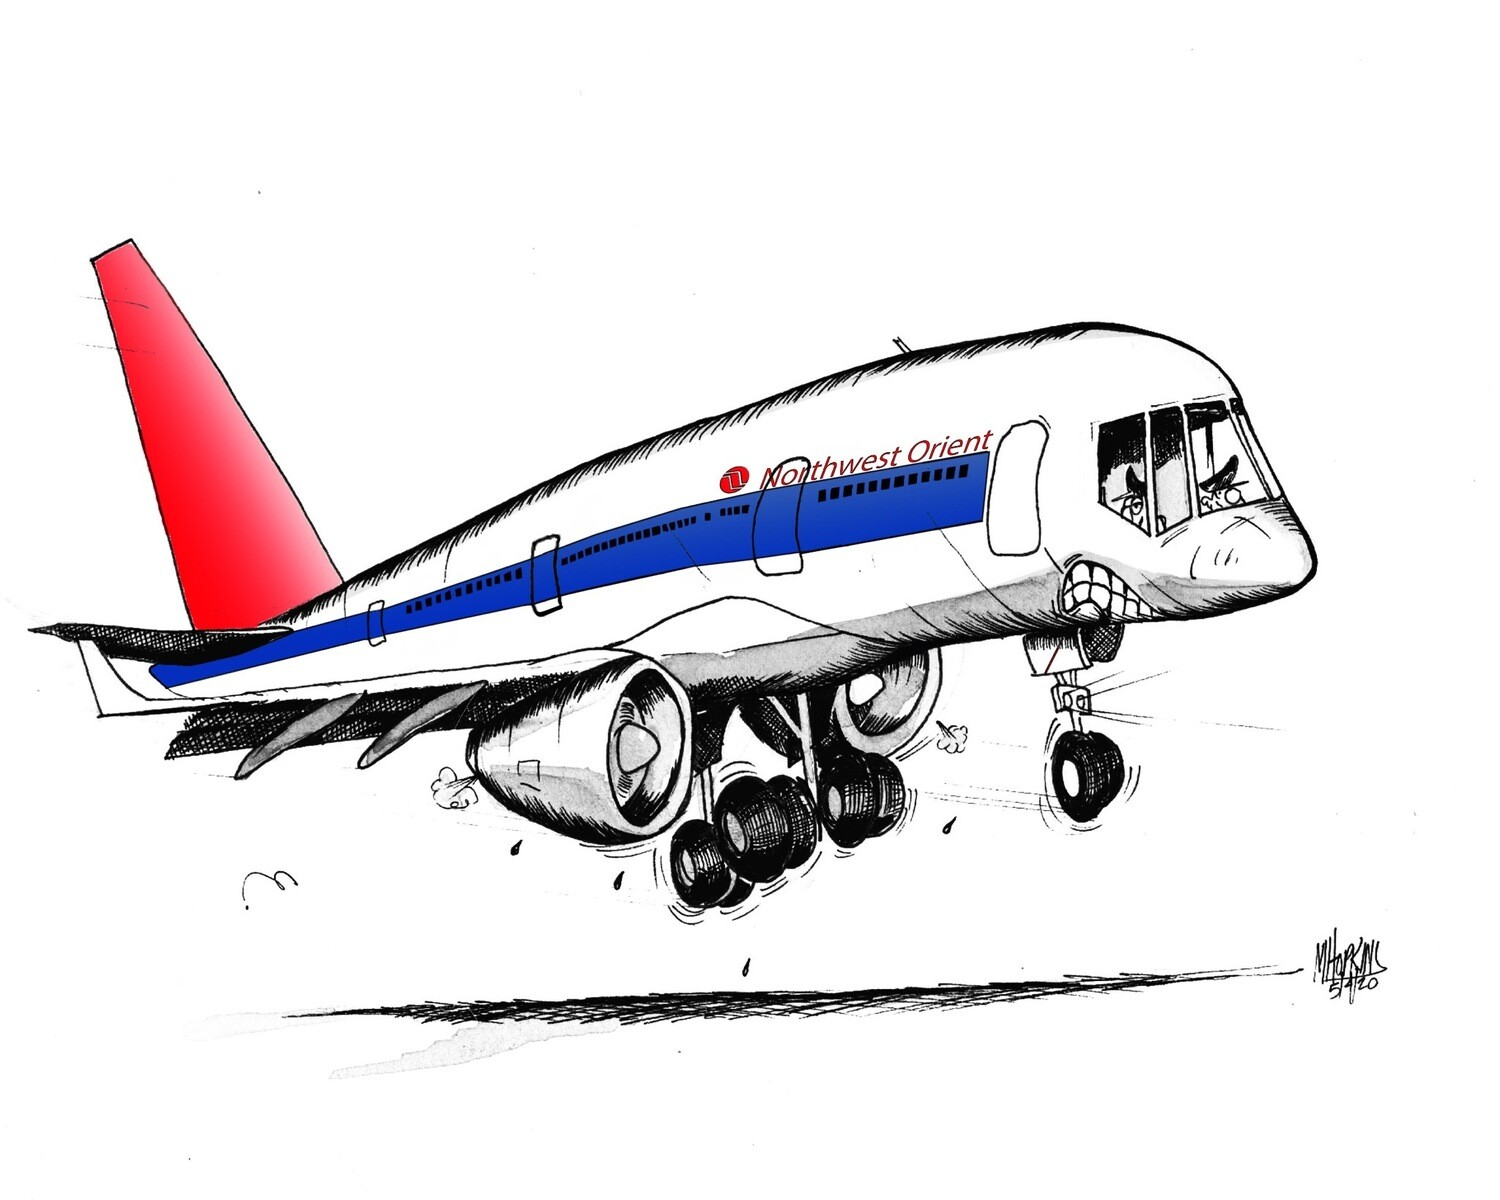 """Northwest Orient Boeing 757 Aviation Caricature, 11"""" x 17"""" limited edition, signed print by Michael Hopkins"""